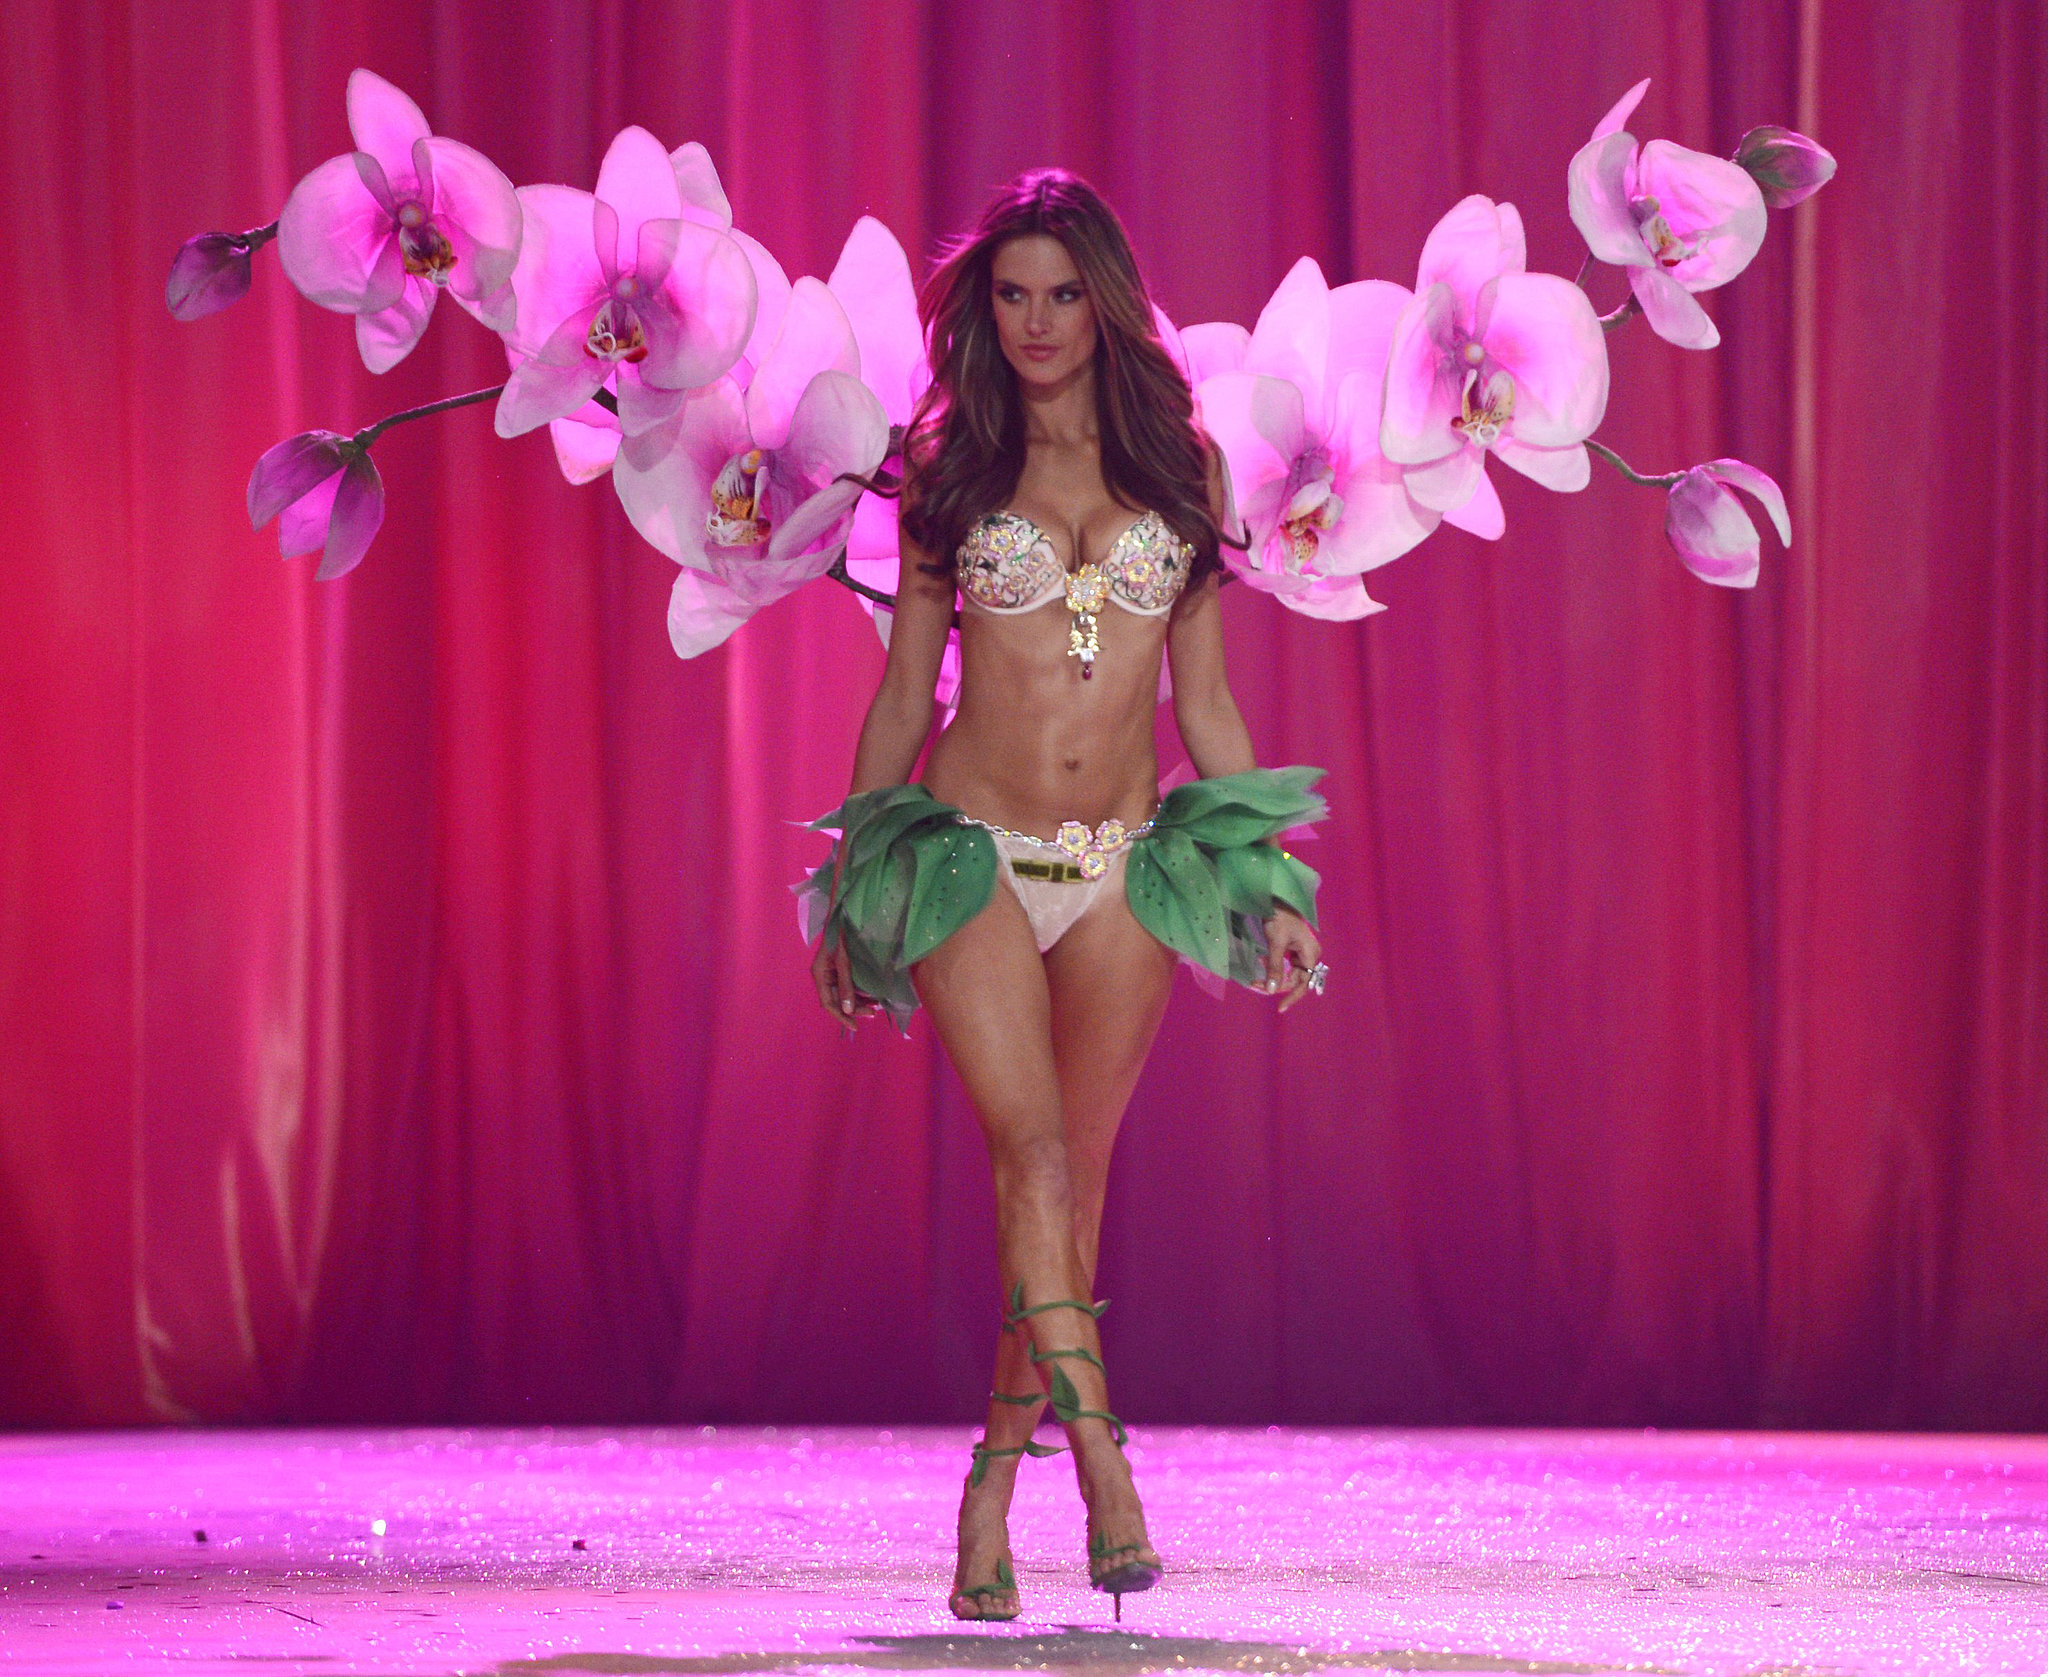 Alessandra Ambrosio sported orchids and leaves on the runway in 2012.